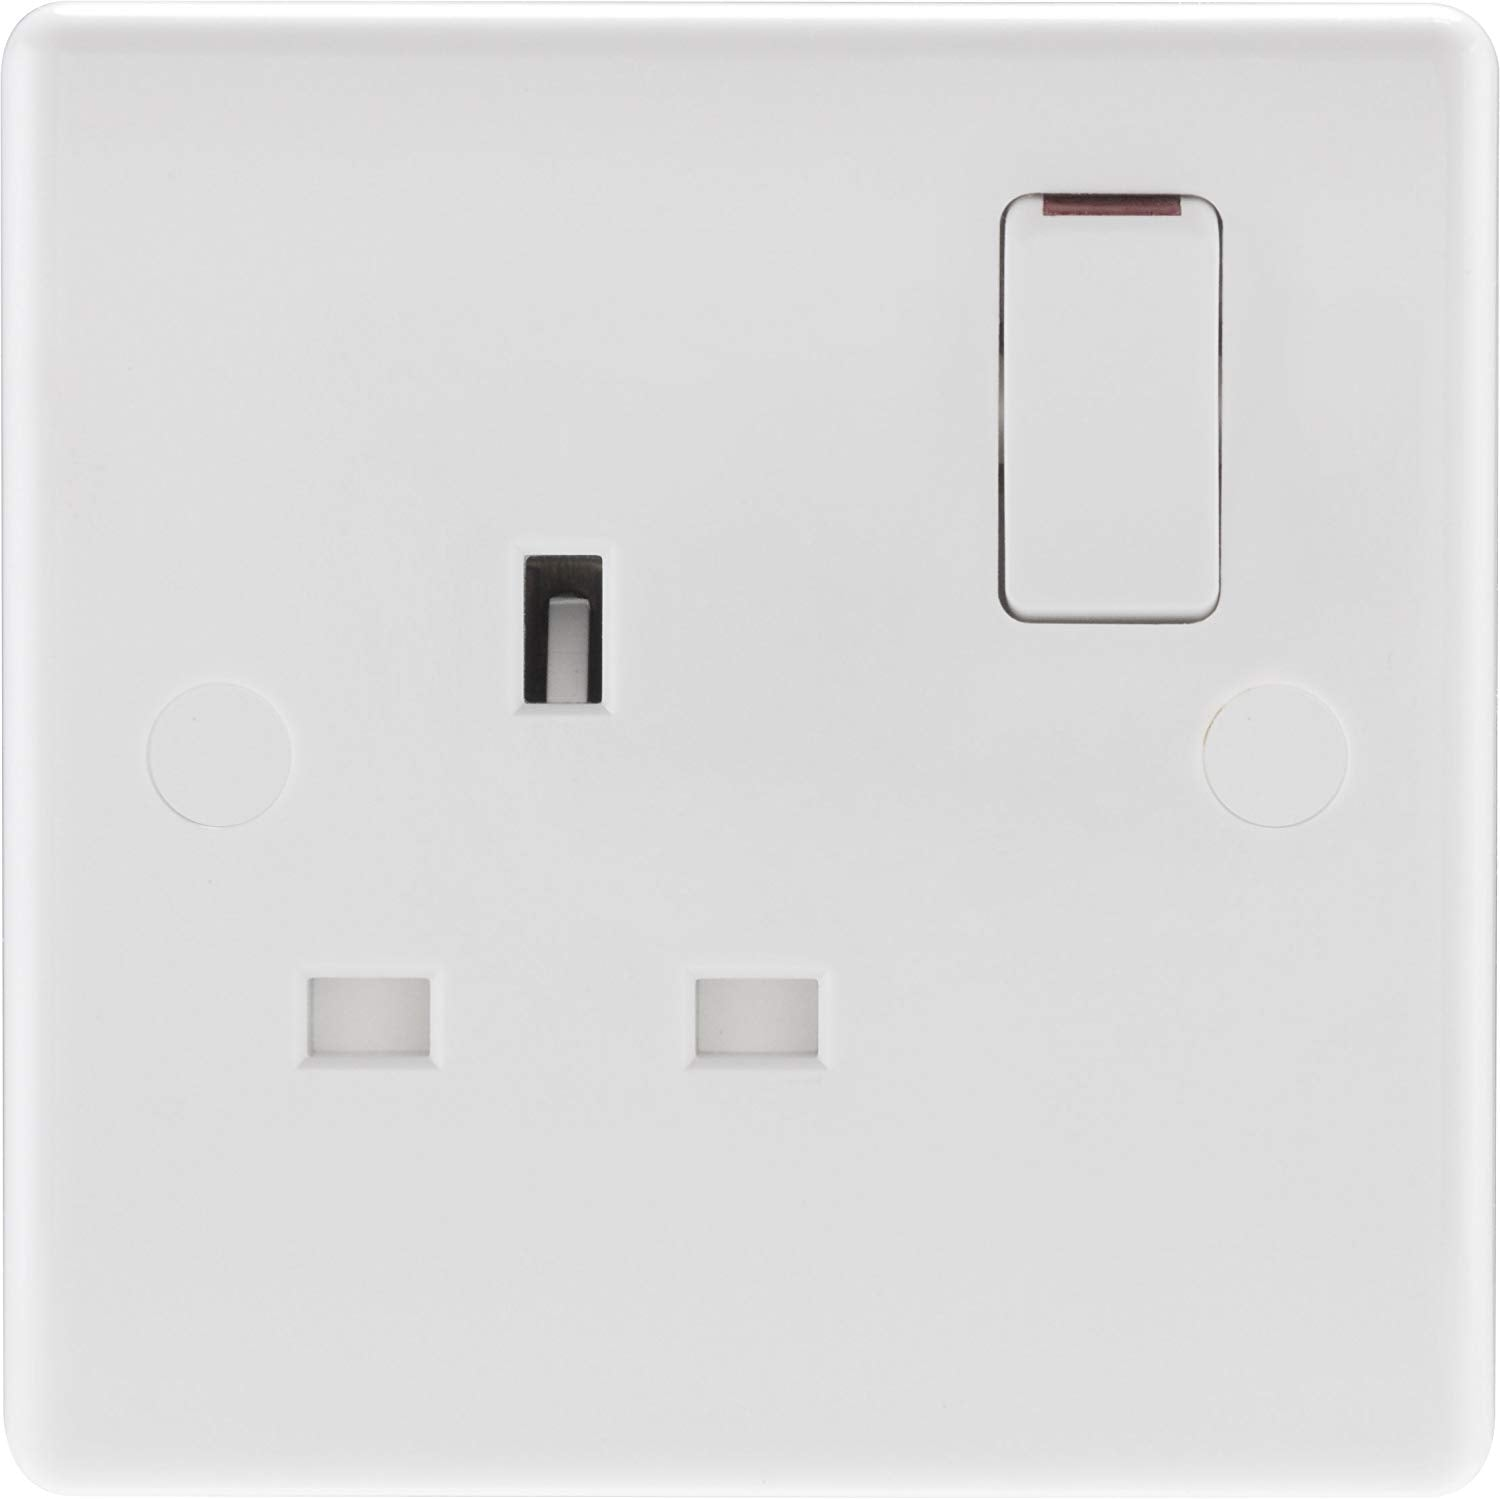 BG Nexus 821 13A Single Pole 1 Gang Switched Socket